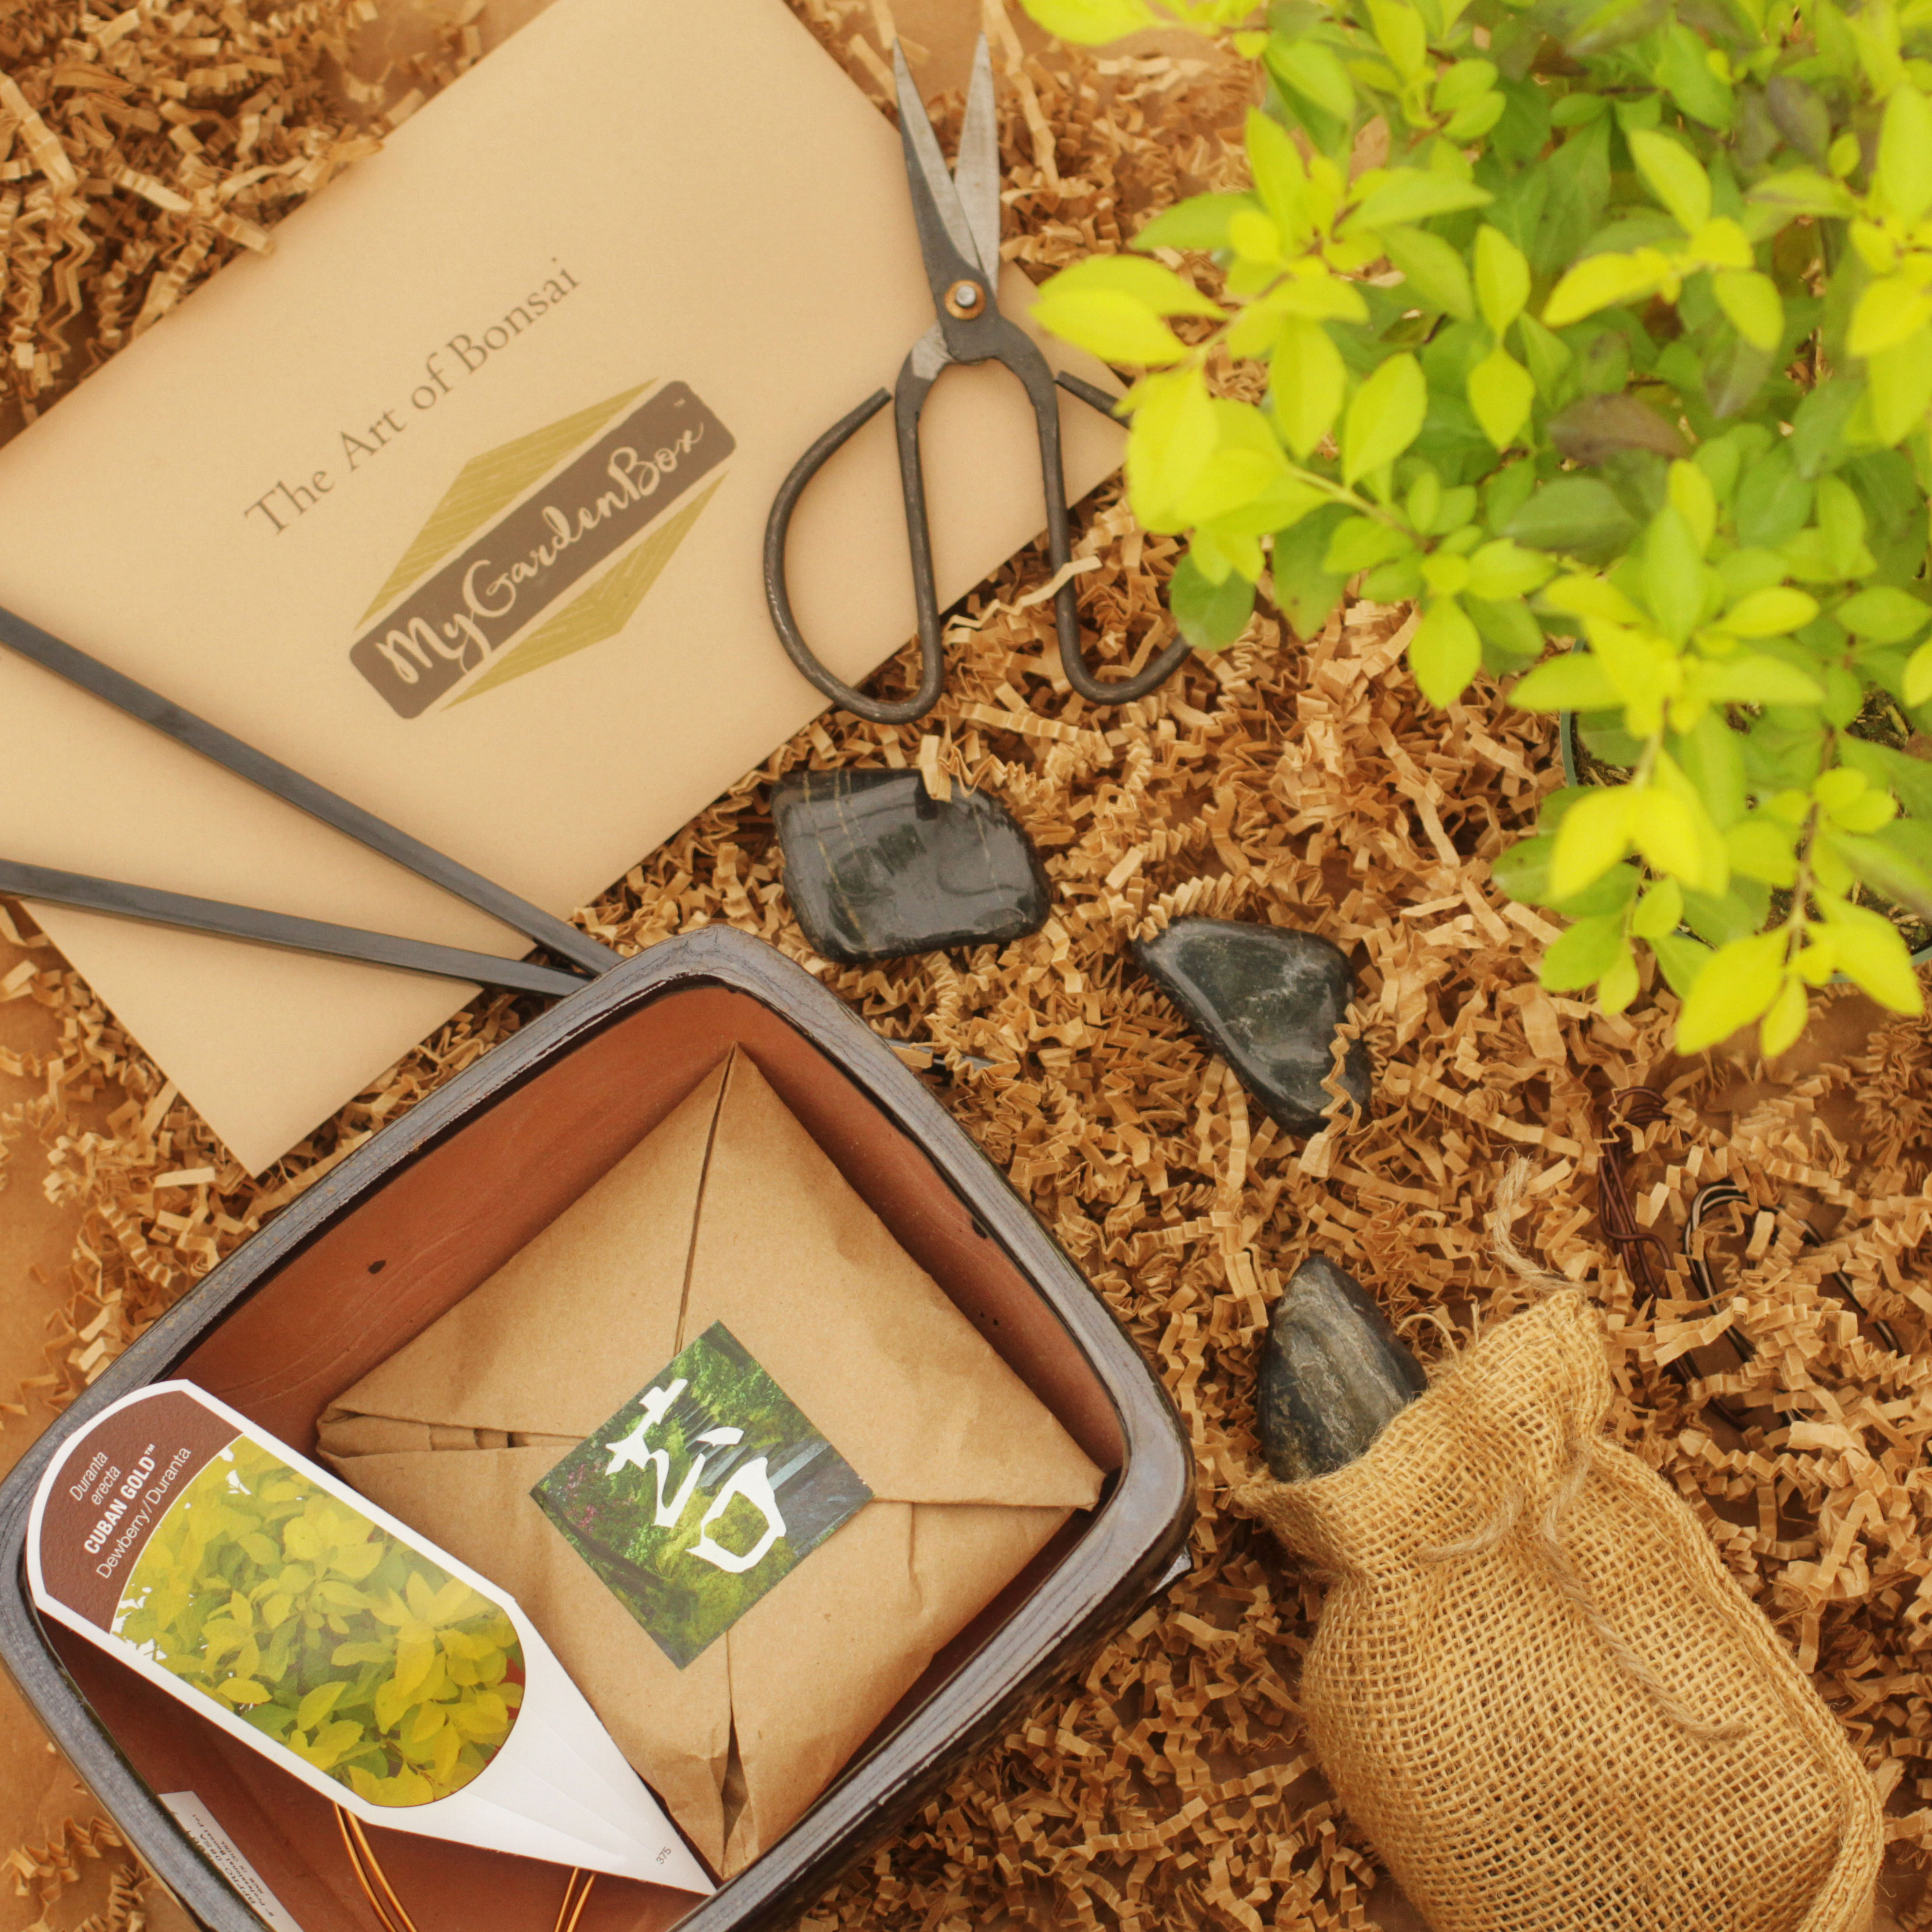 garden gift guide subscription box my garden box